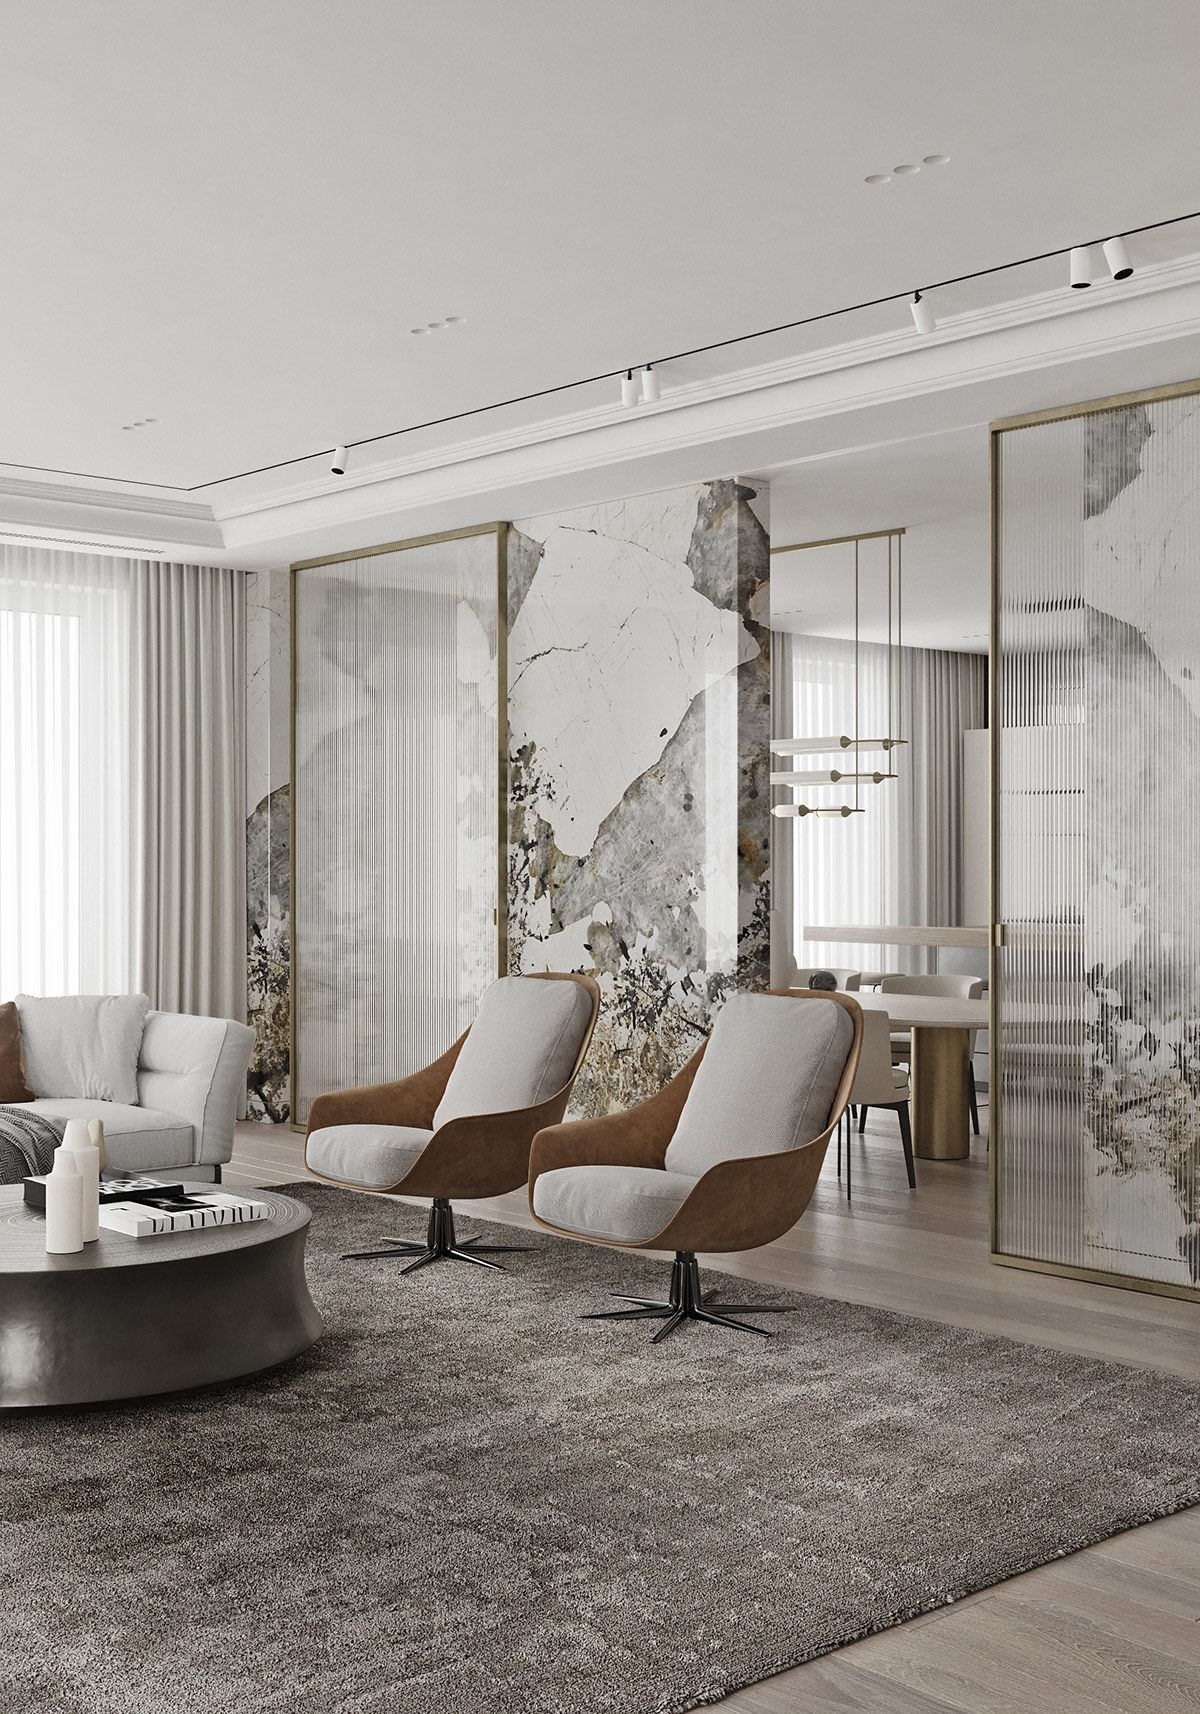 Magnificent Modern Marble Interior With Metallic Accents Marble Interior Living Room Interior Luxury Interior